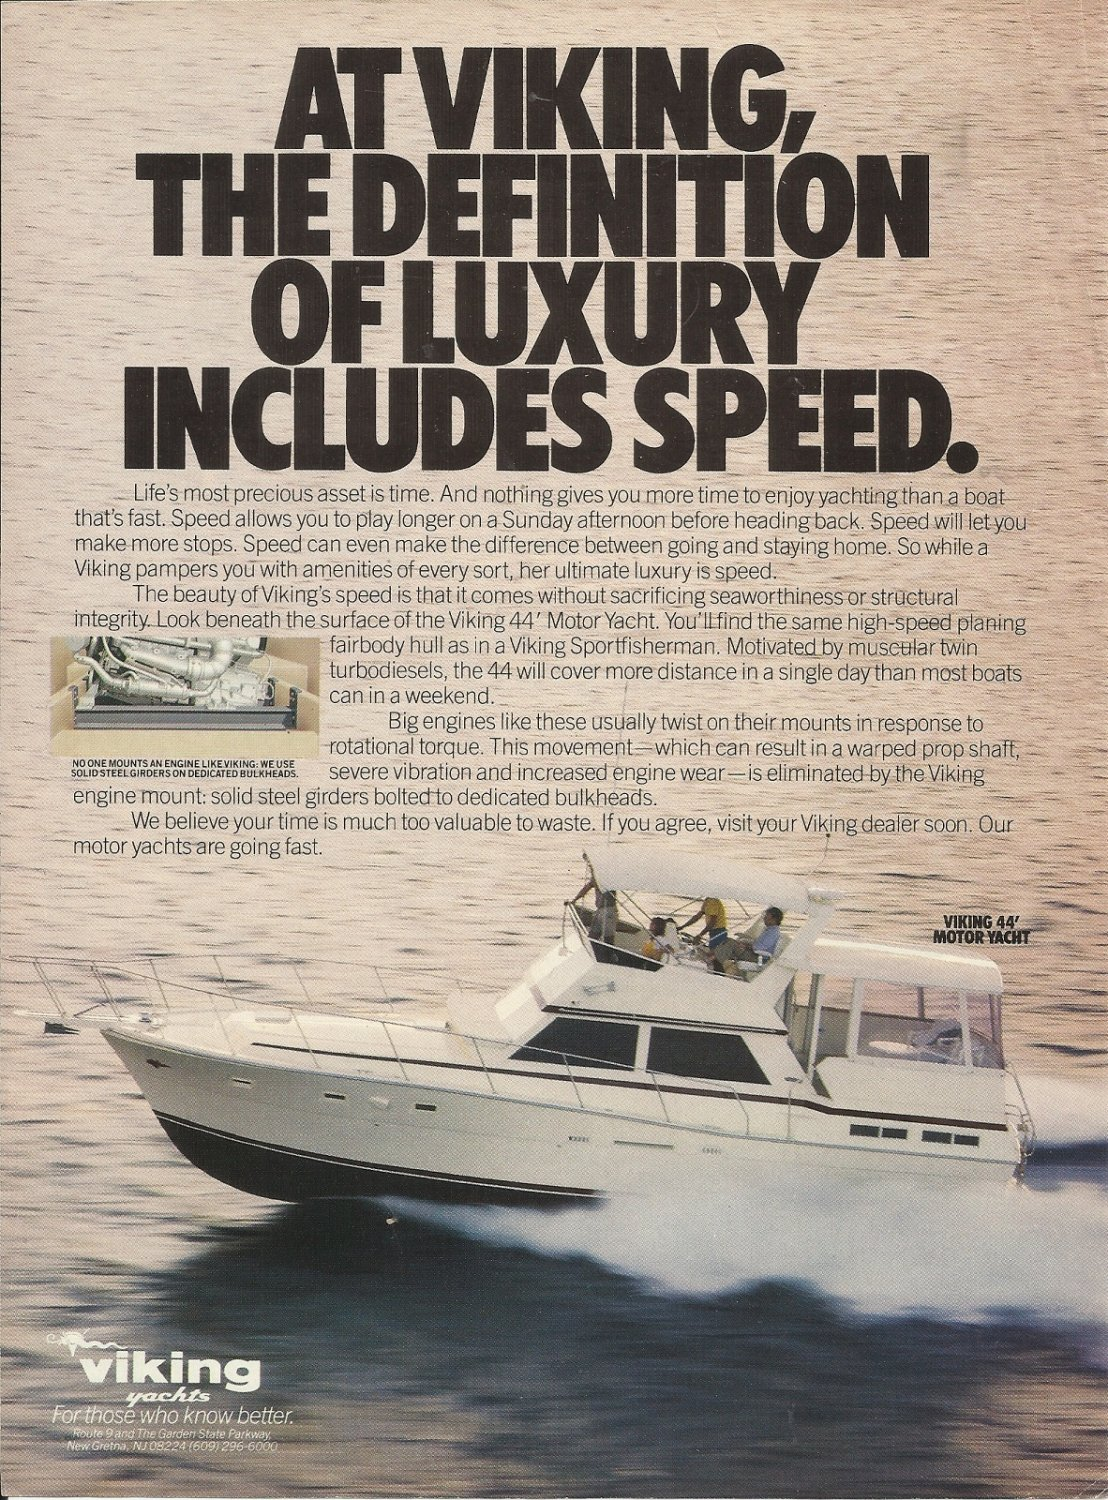 1984 Viking Yachts Color Ad- The 44' Motor Yacht